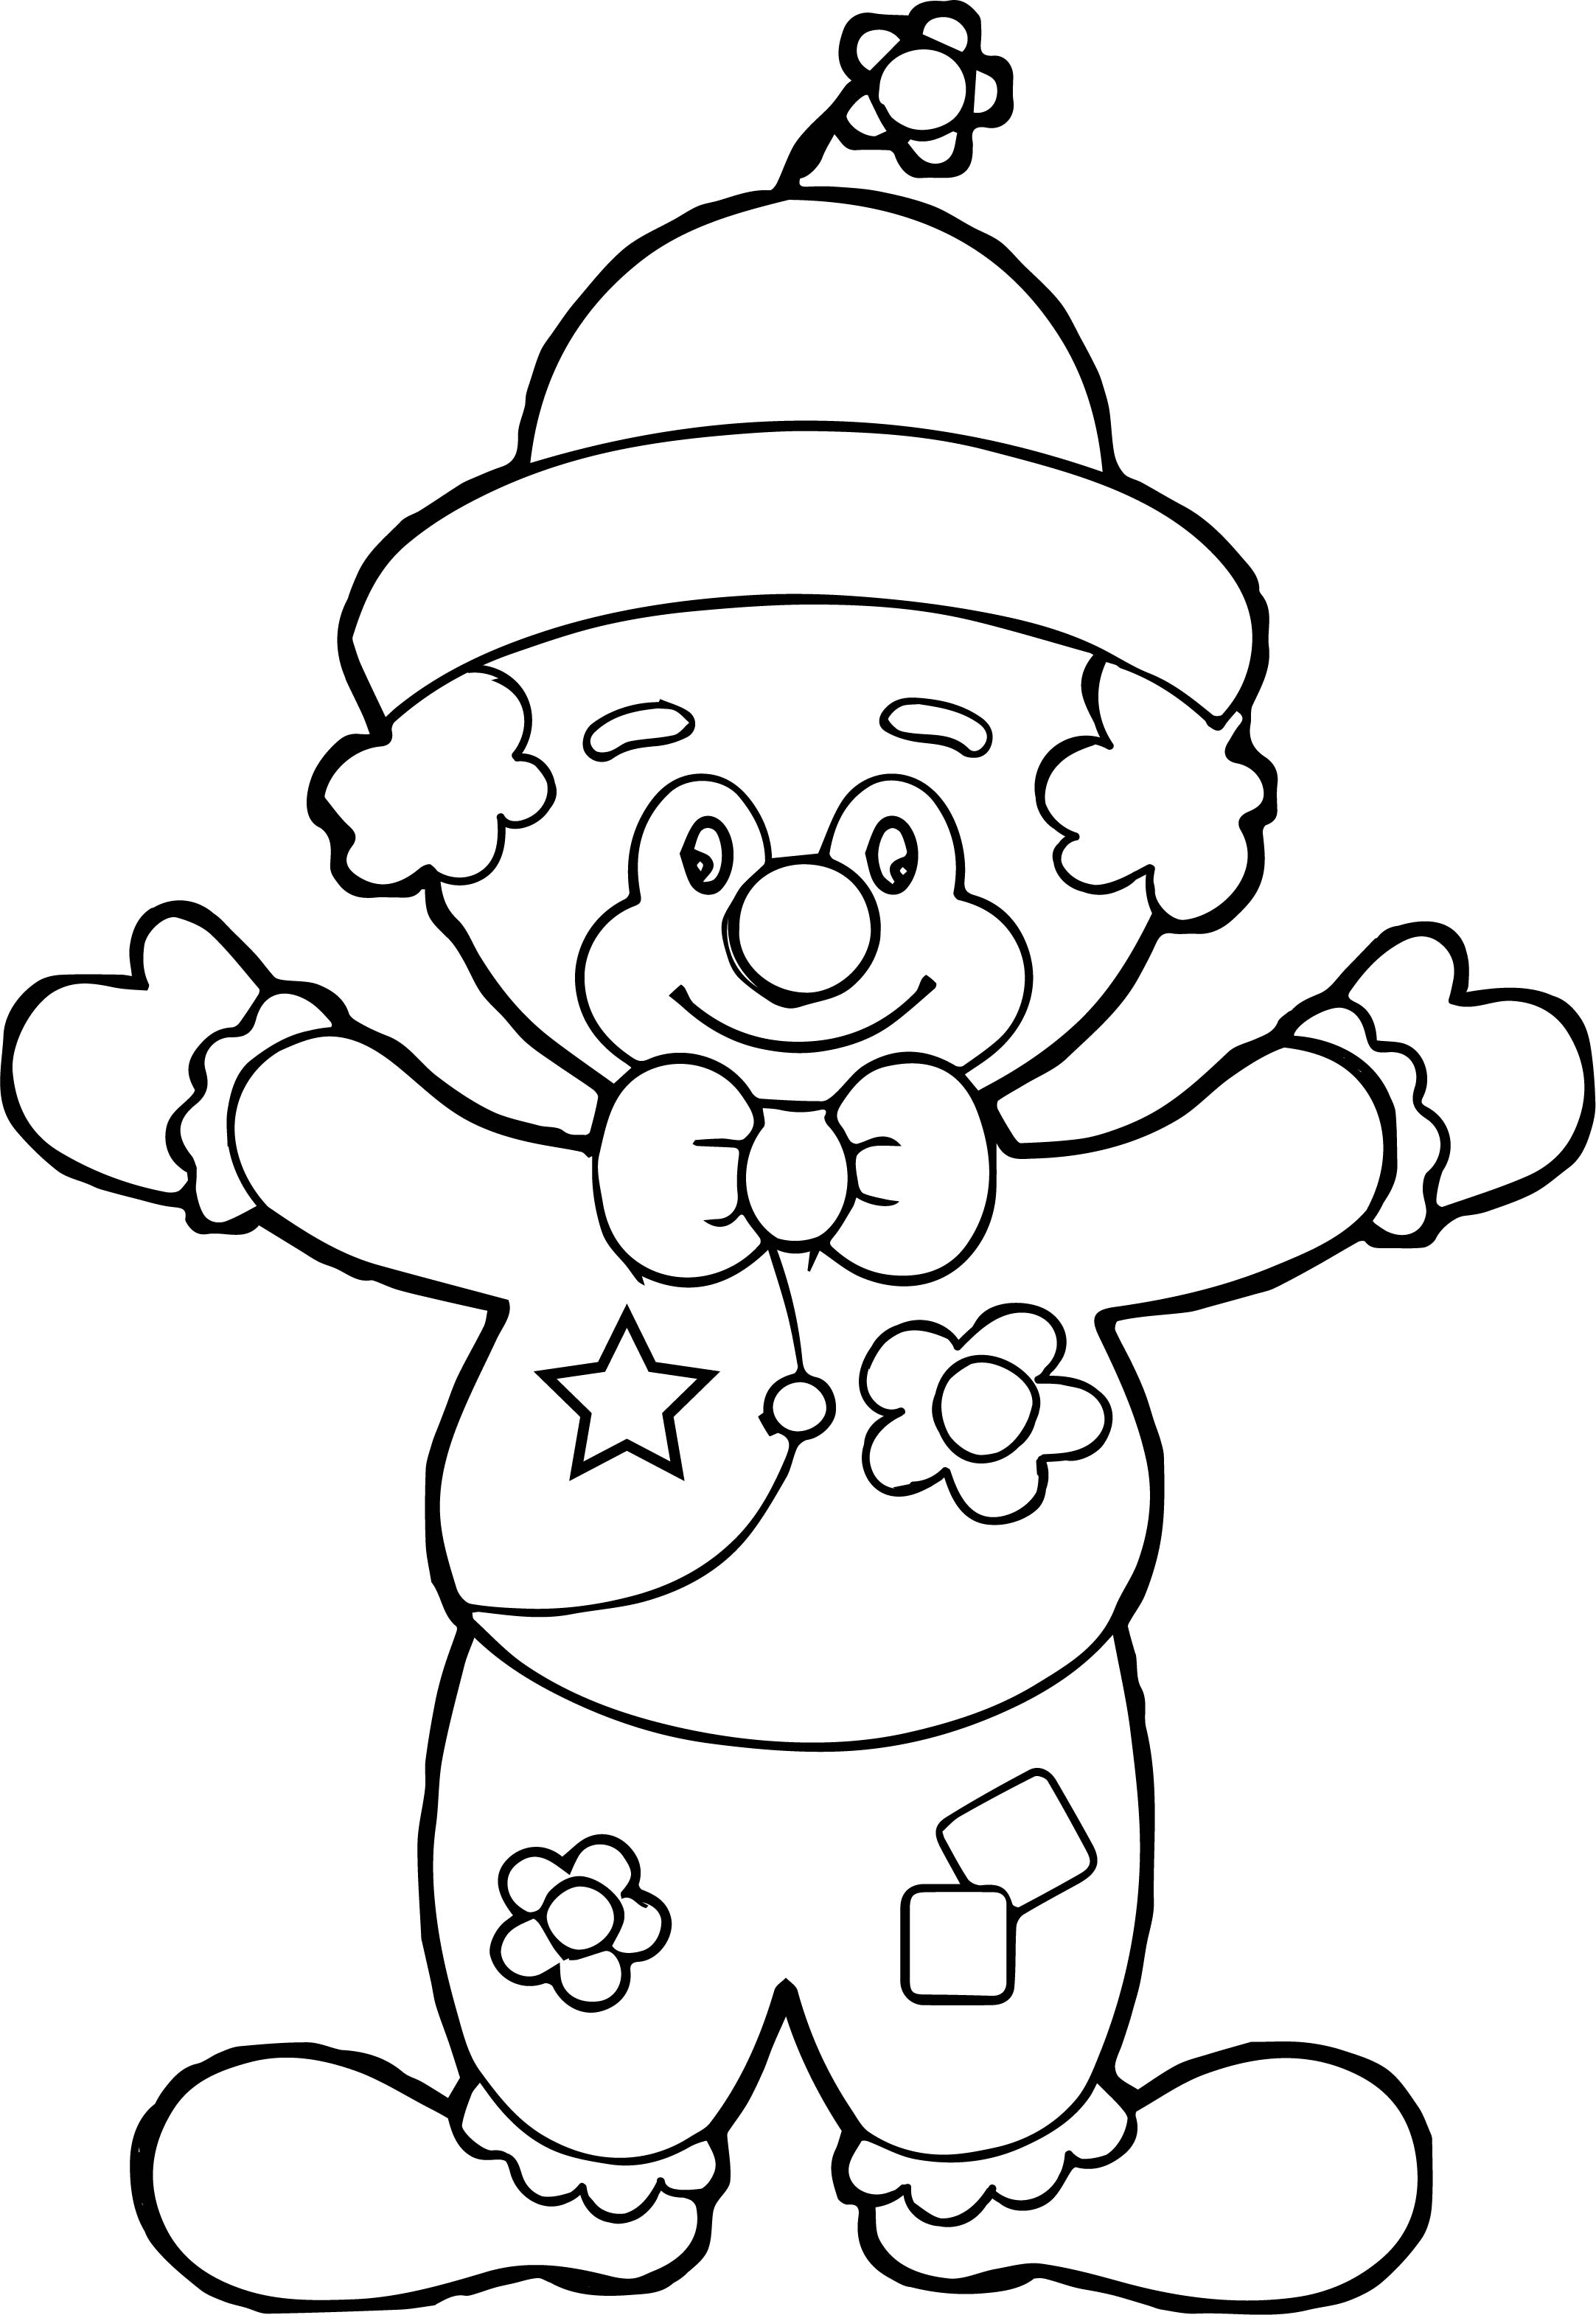 Clown Coloring Page WeColoringPage 005